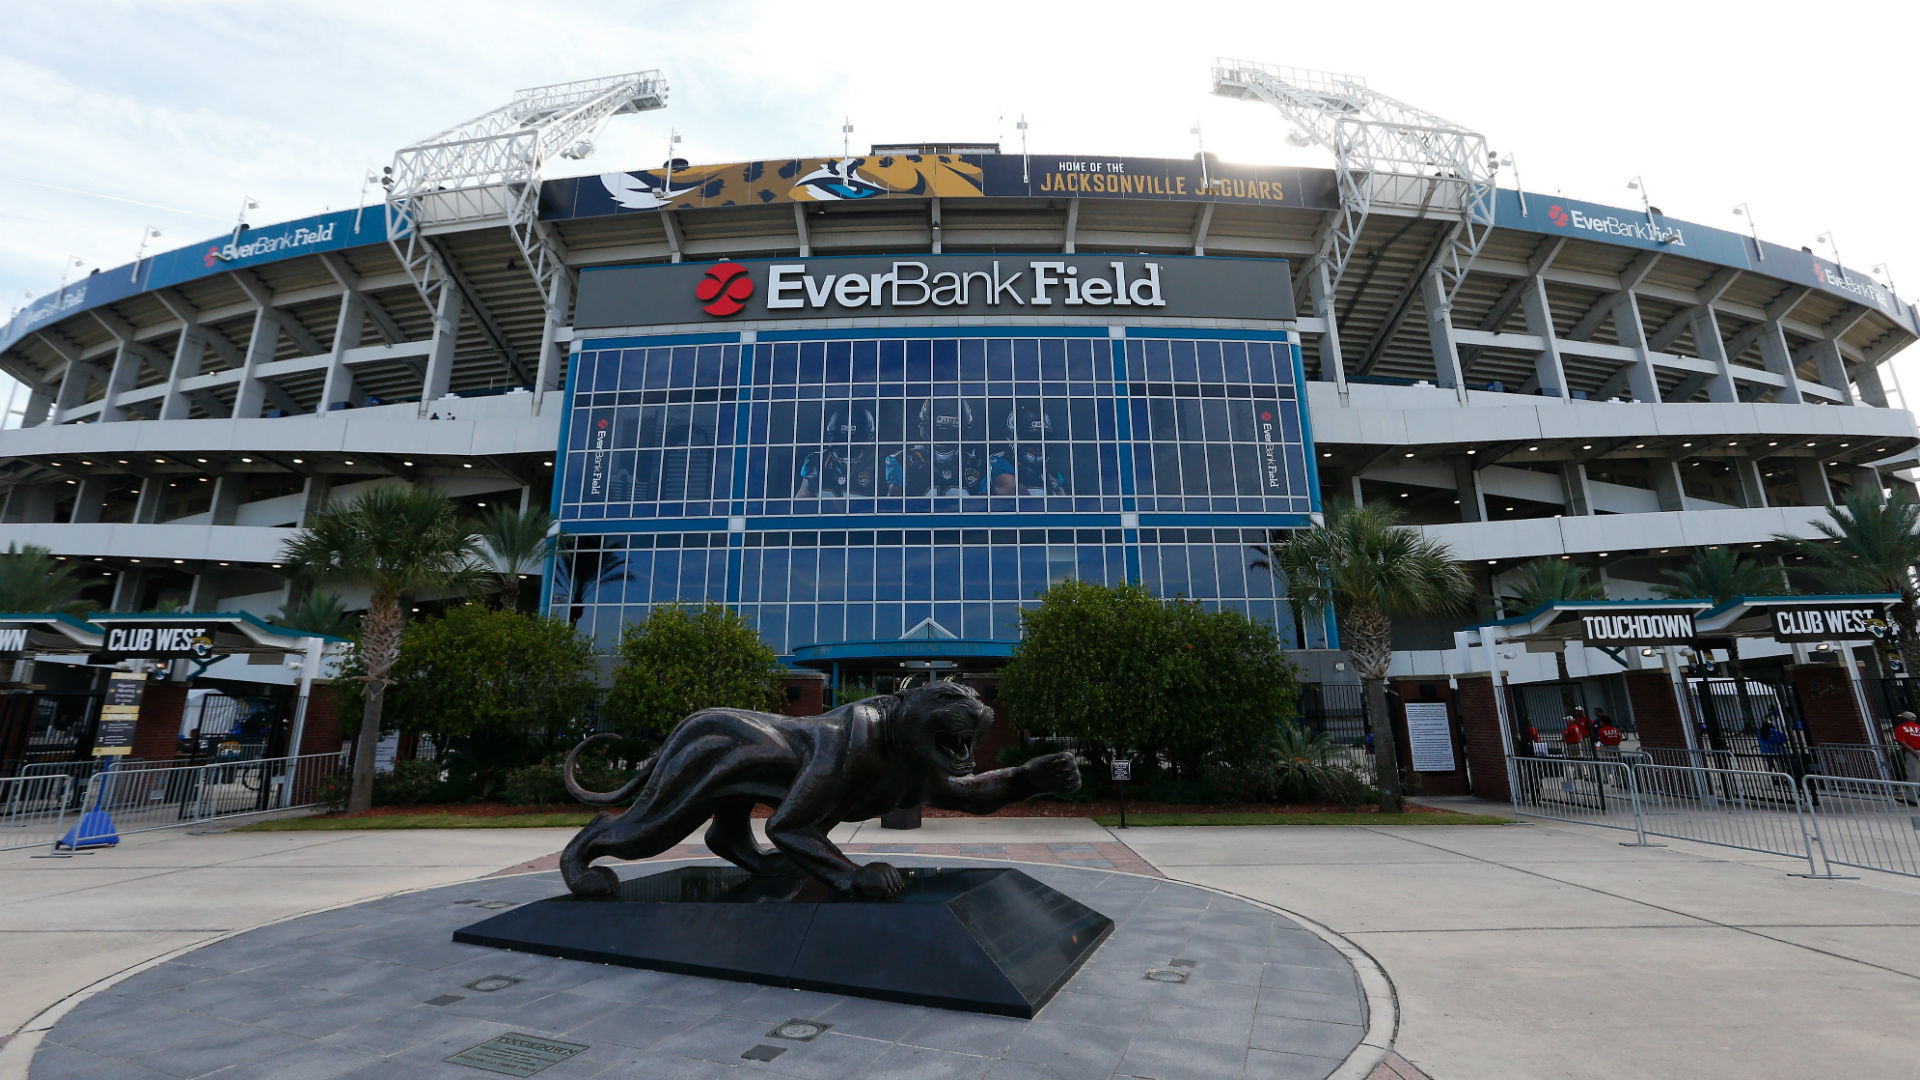 Dog park coming to South Fan Deck of Jaguars' stadium